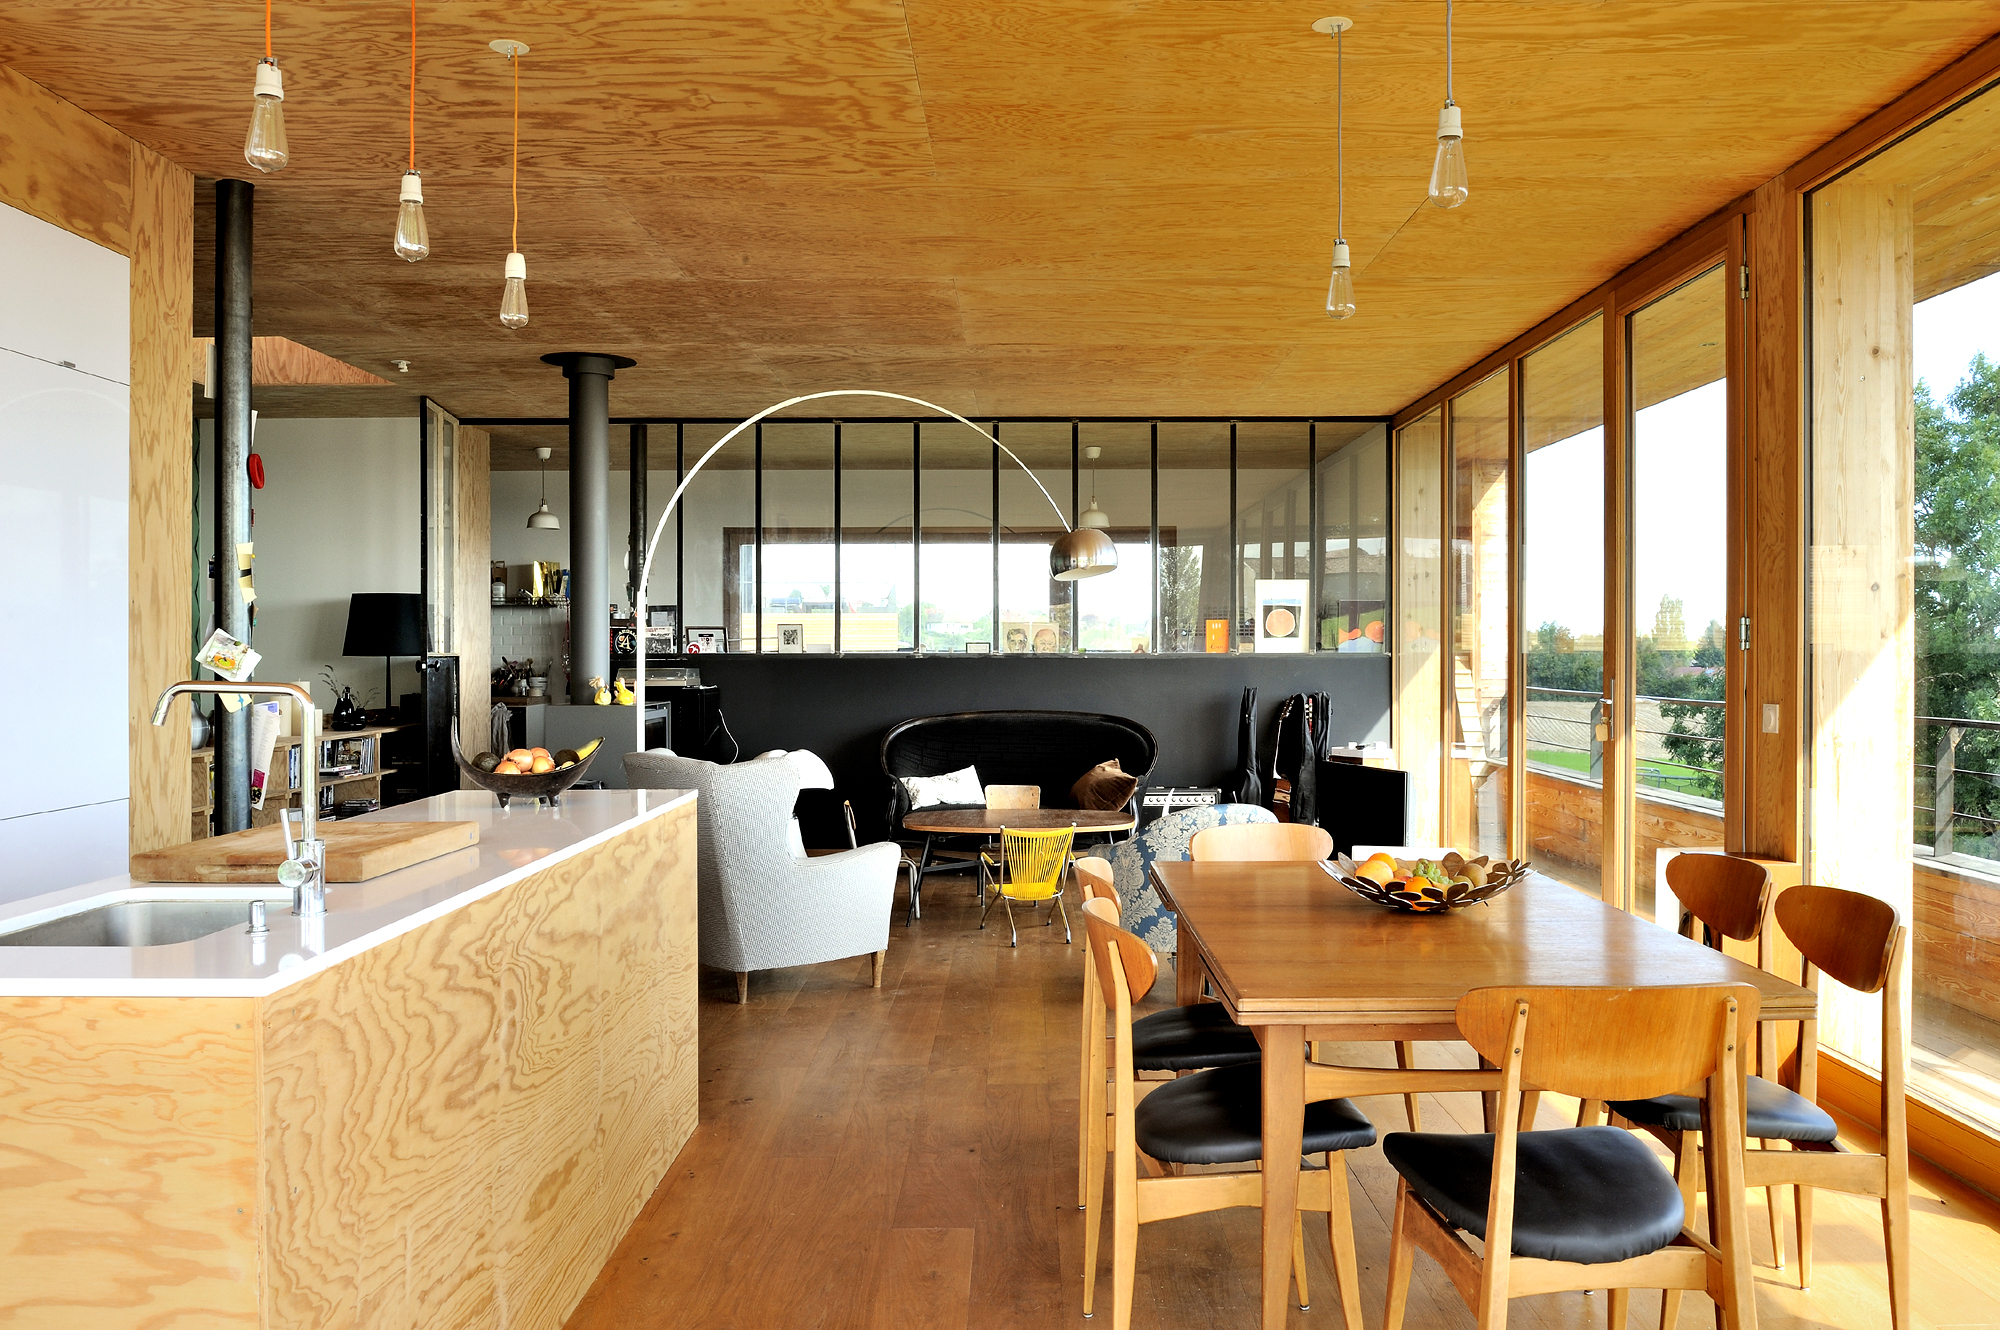 Amenagement interieur maison en bois for Interieur chalet en bois